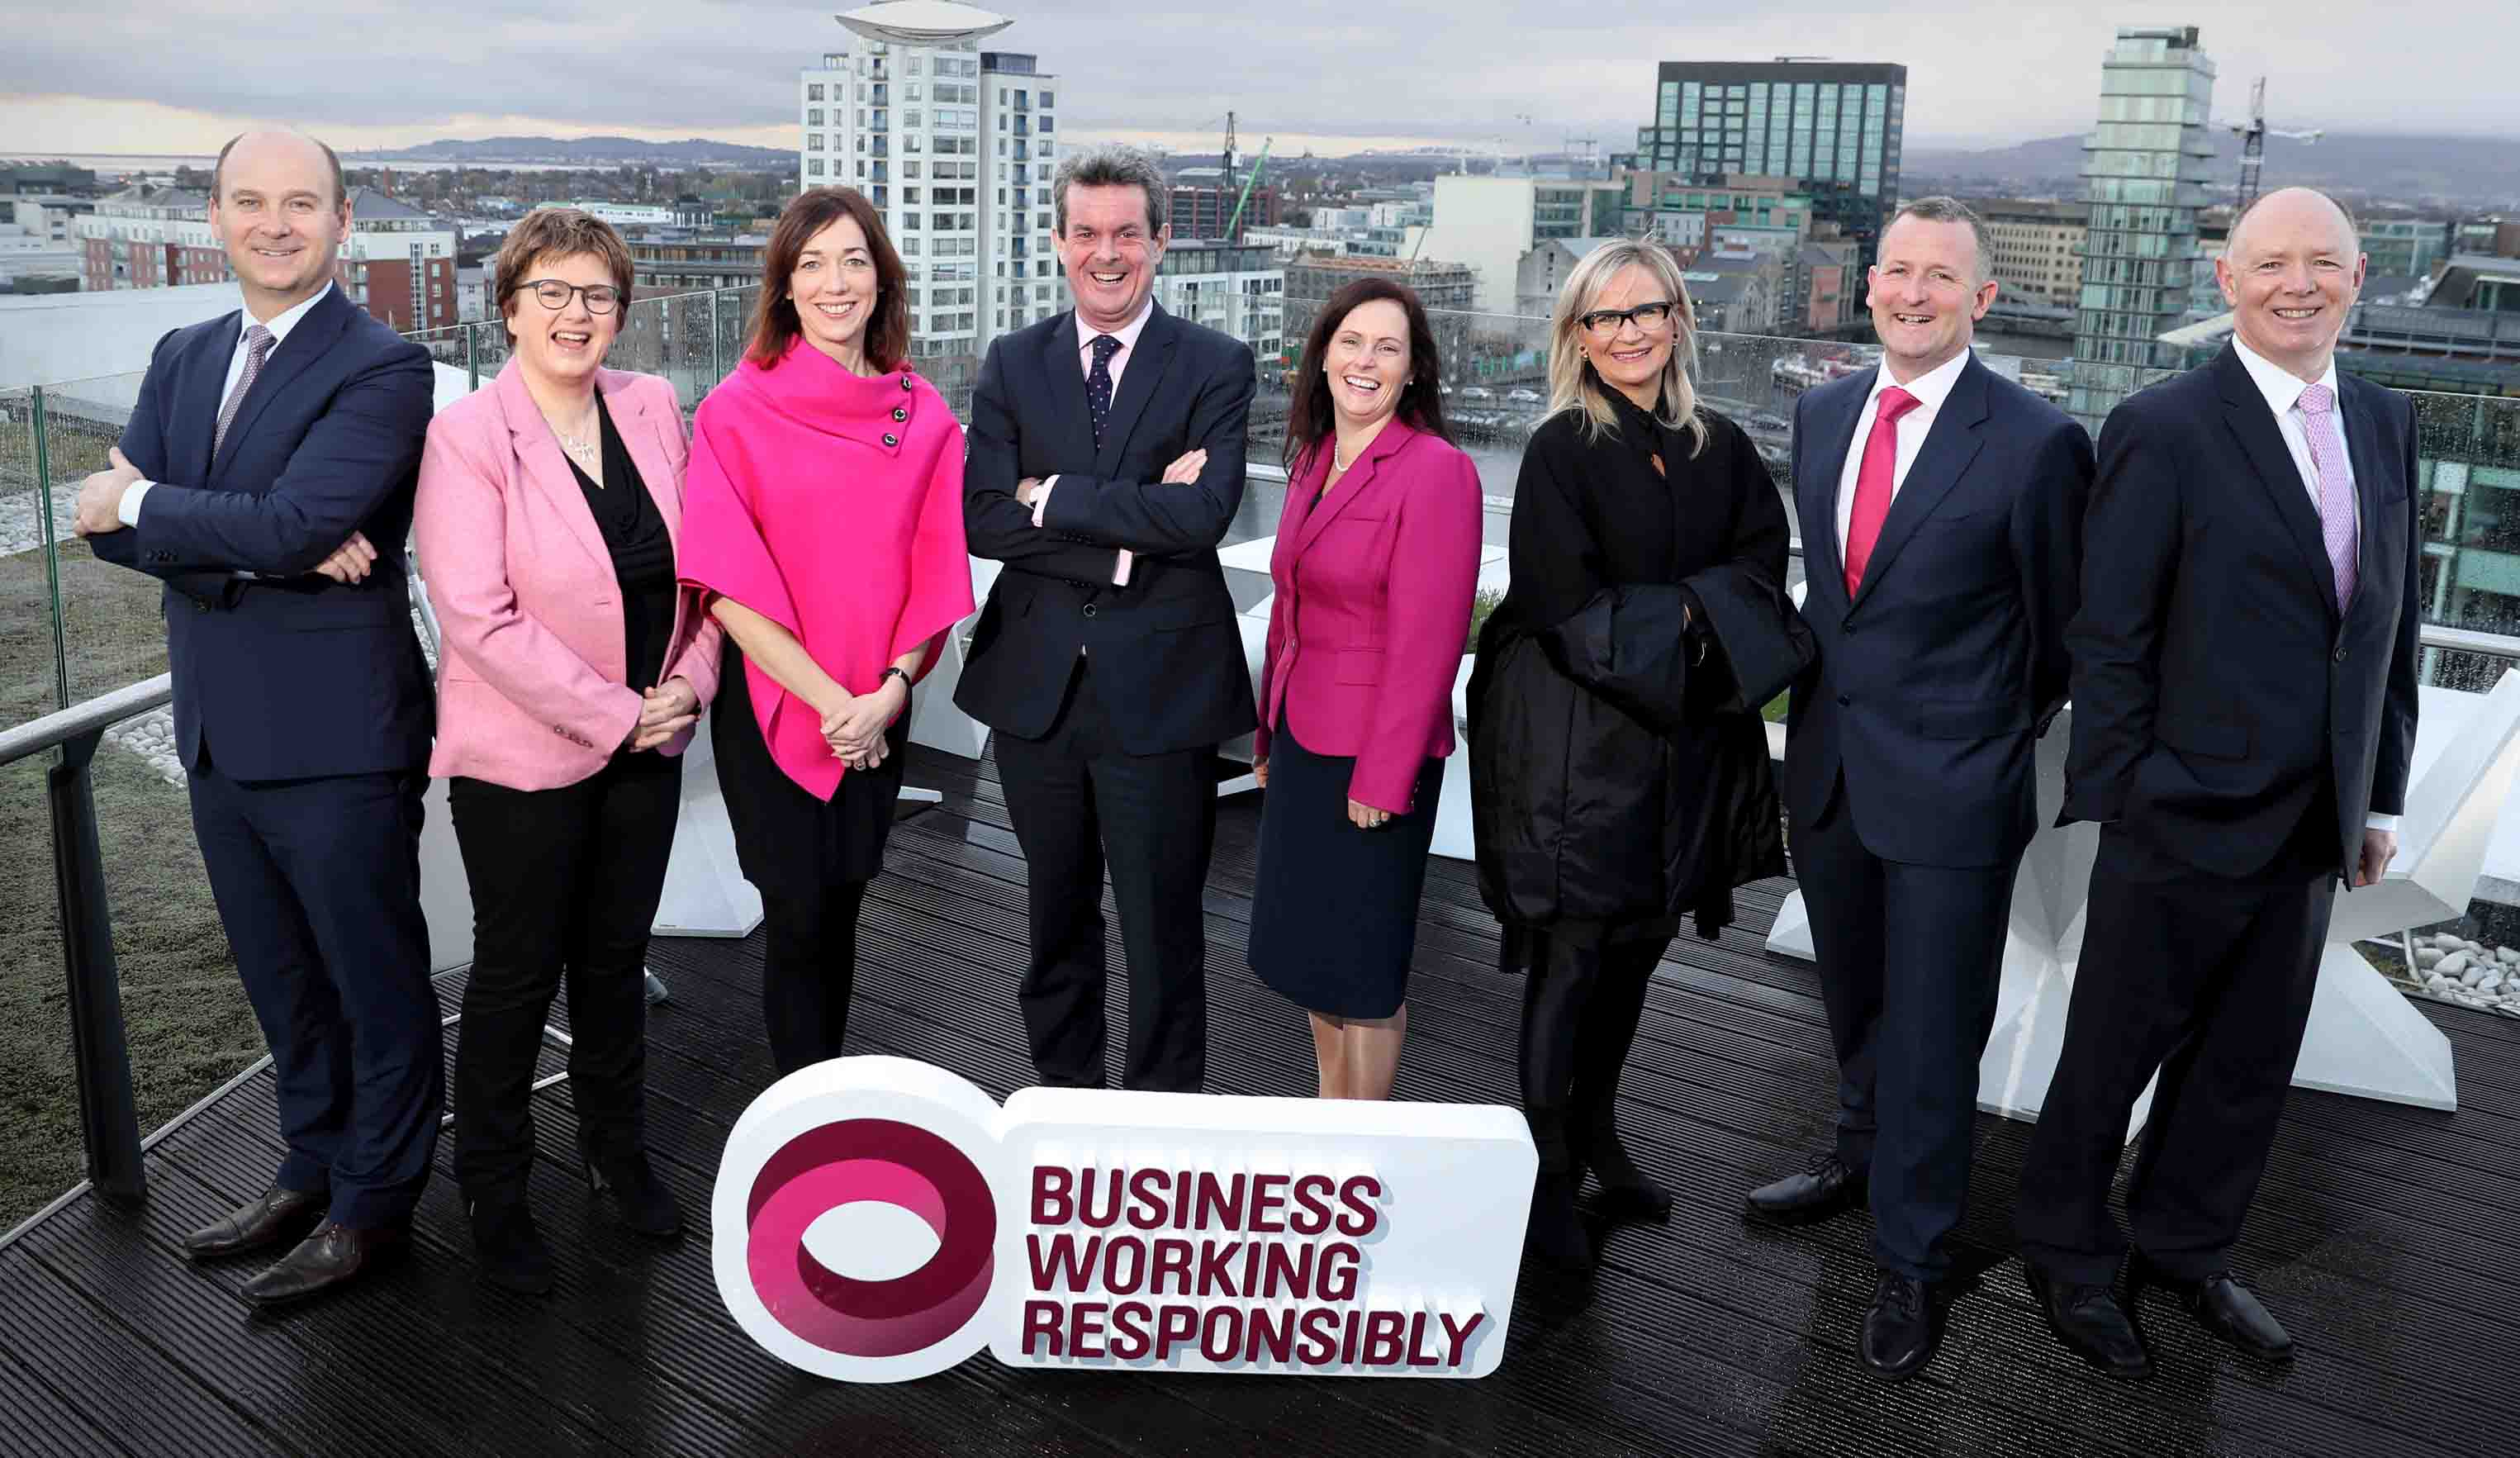 All you need to know about Version 4 of the Business Working Responsibly mark